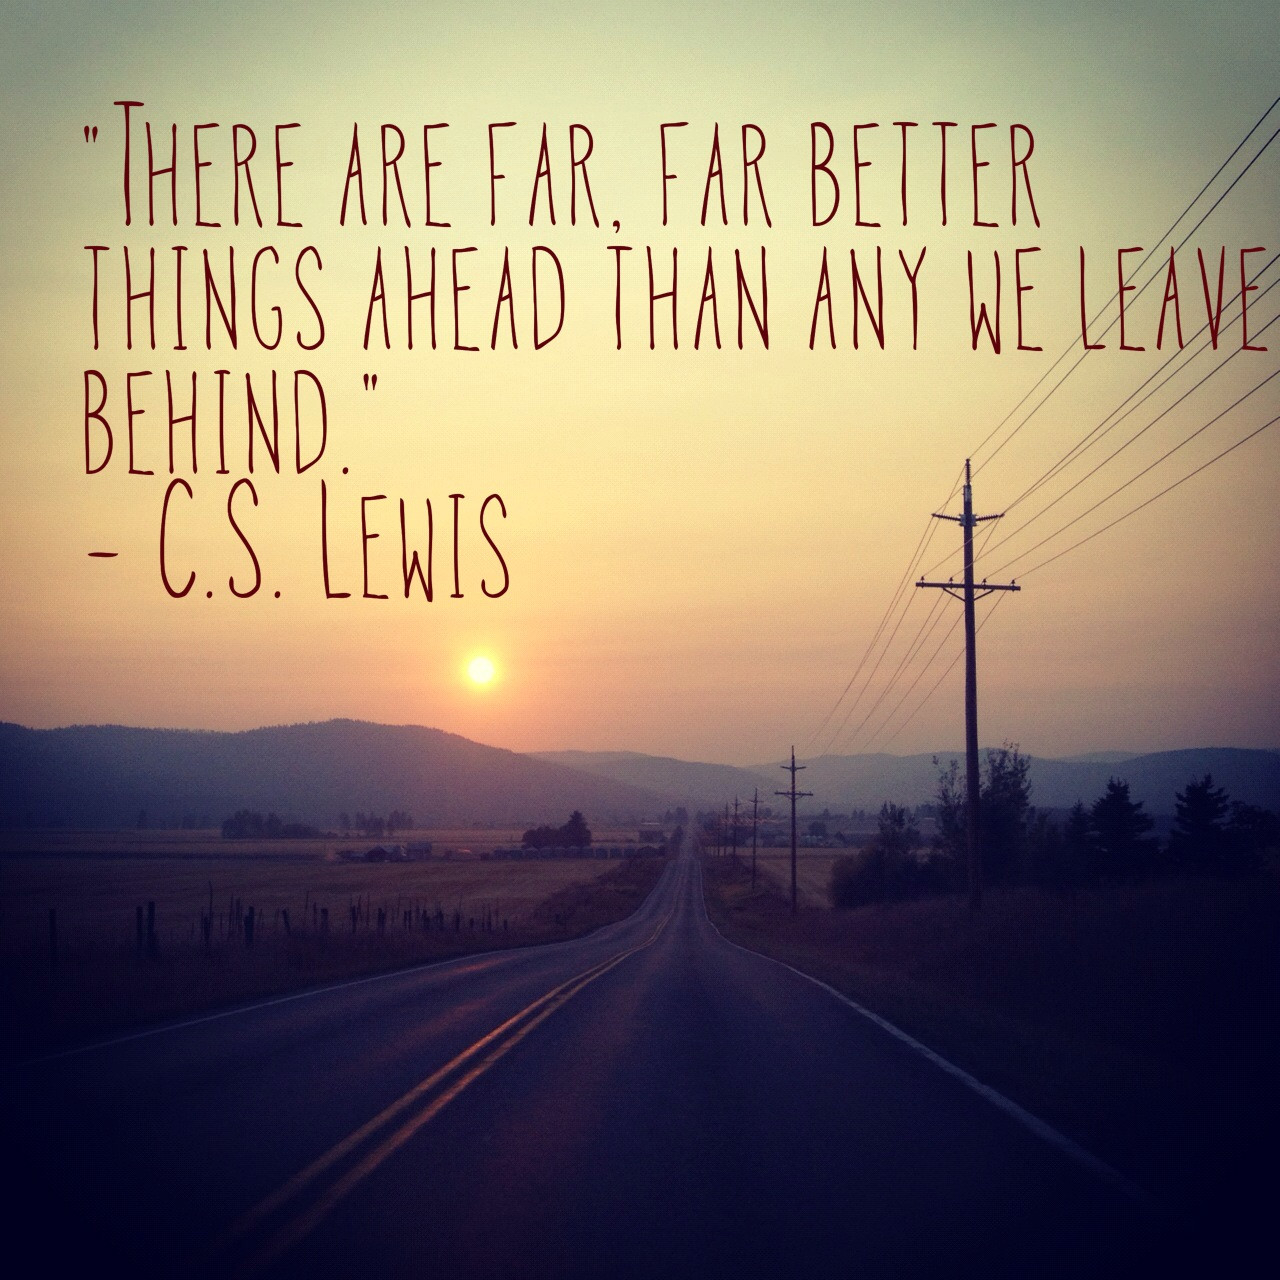 C S Lewis Quotes On Life  Quotes From C S Lewis Novelist & Poet